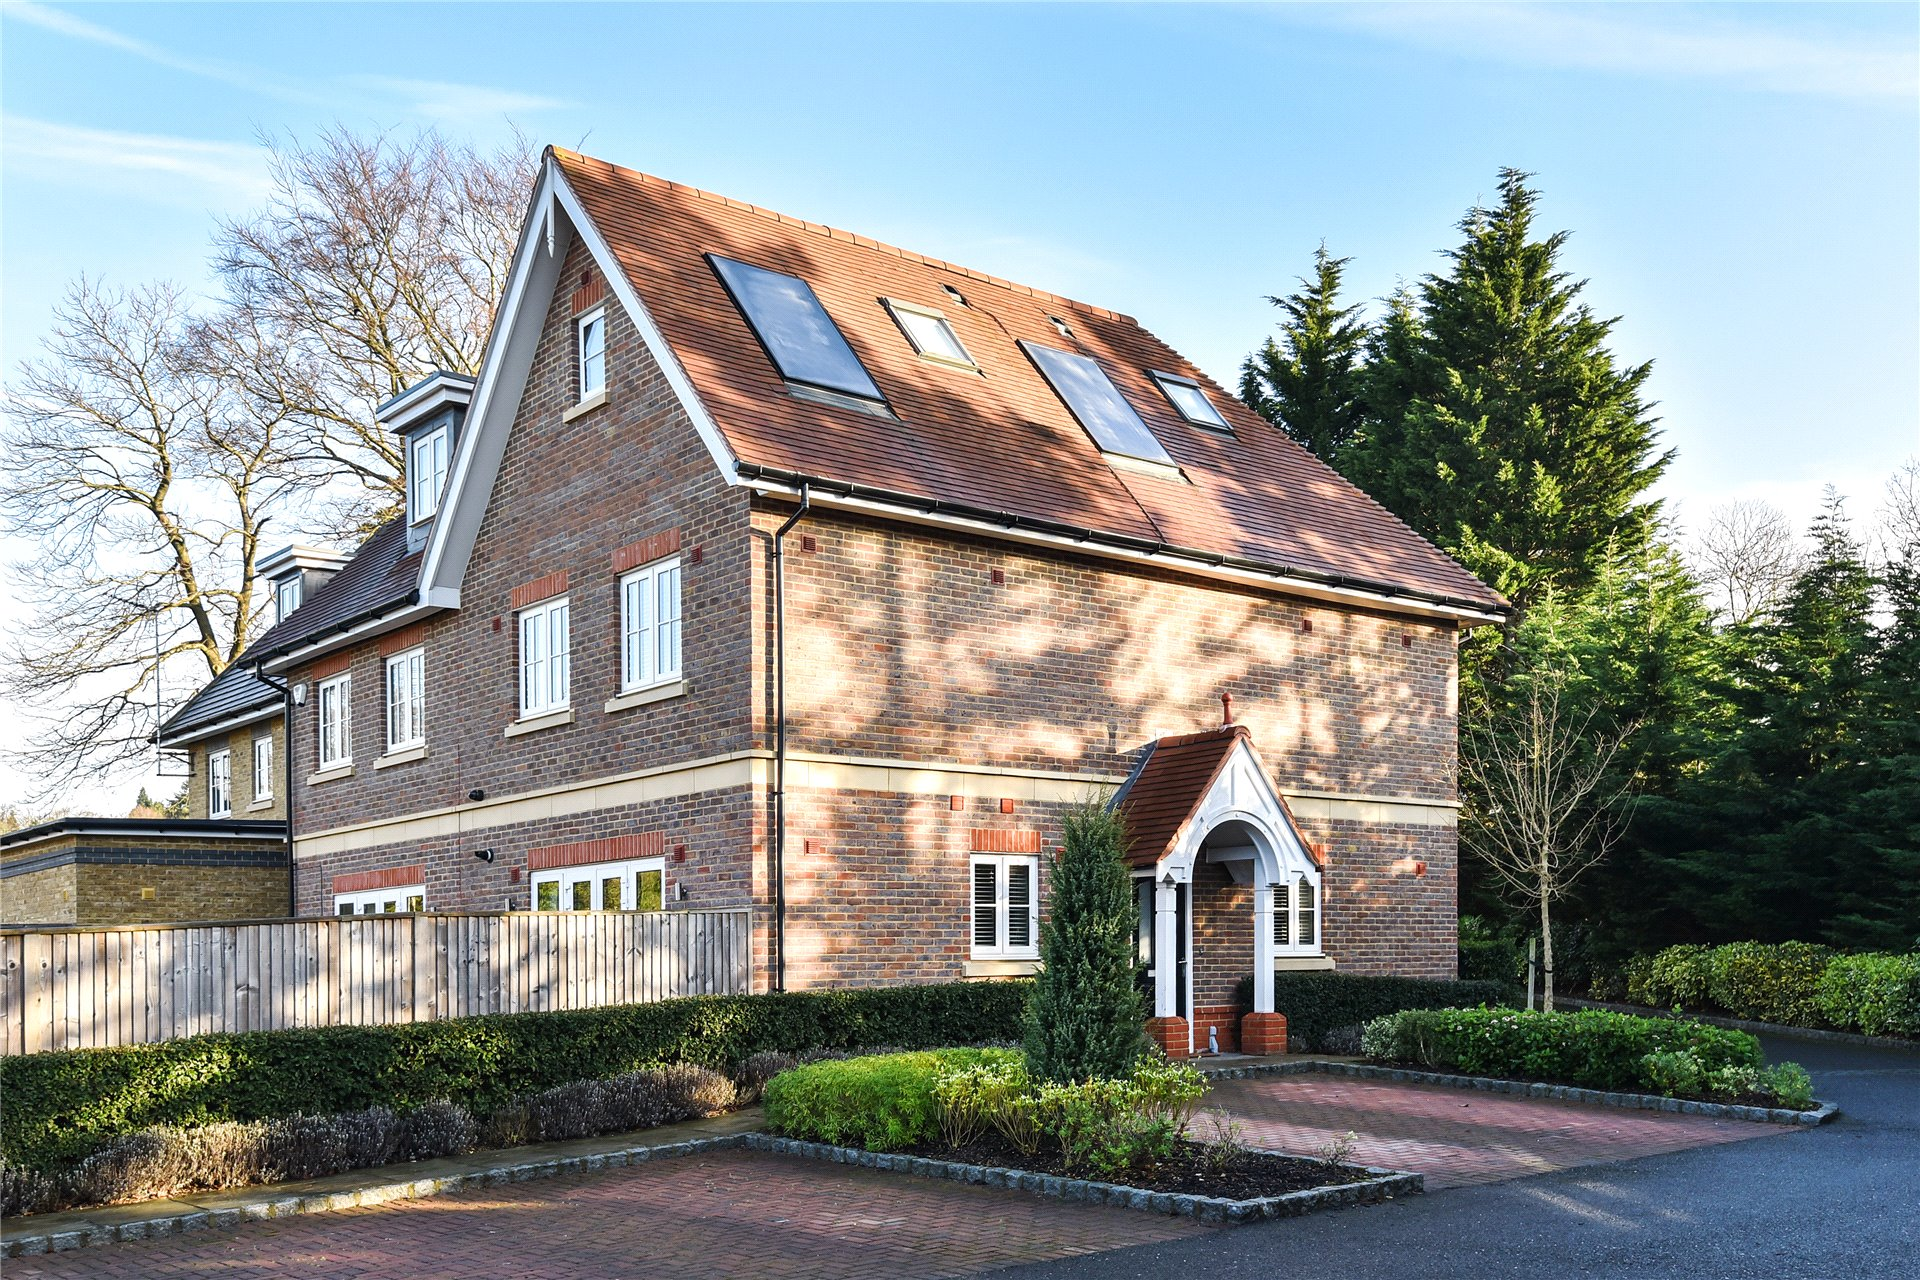 4 Bedrooms Semi Detached House for sale in Meadows Drive, Camberley, Surrey, GU15